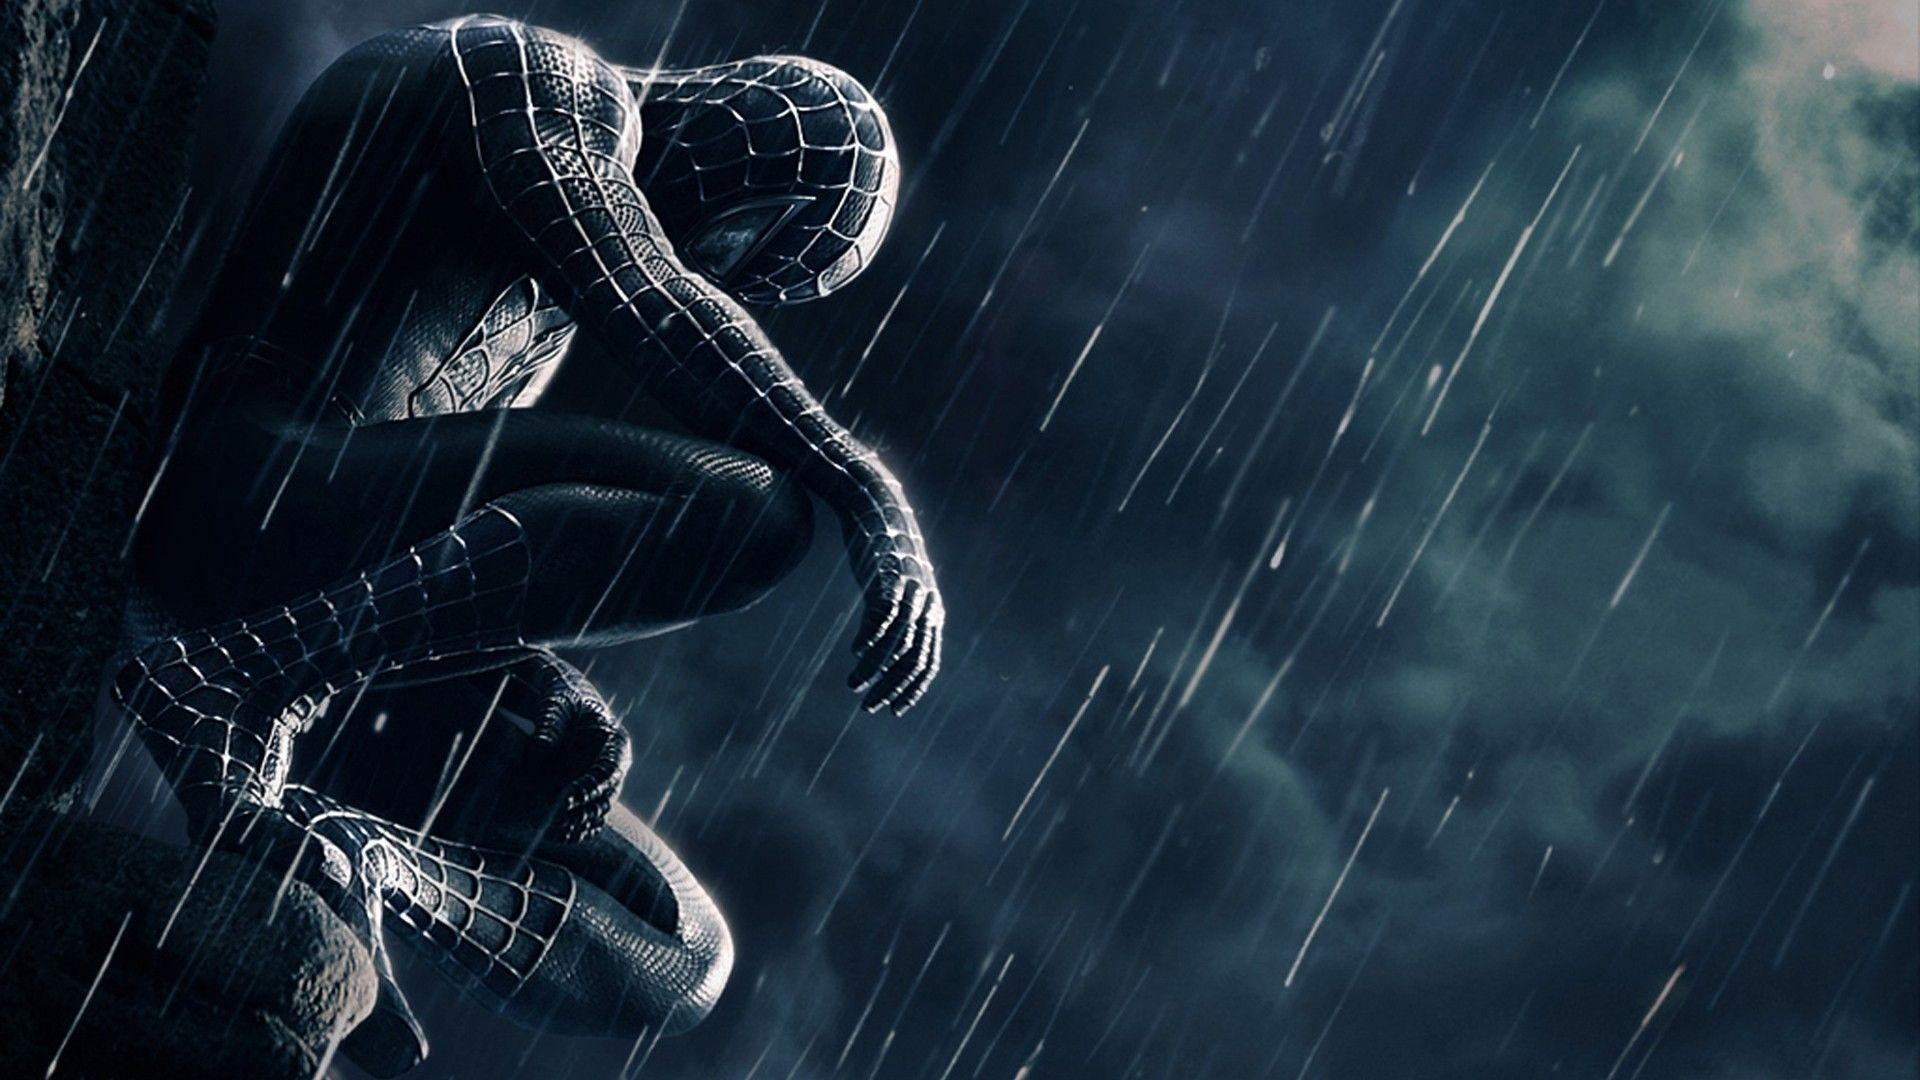 Spider Man Hd Wallpapers 1080p 73 Images